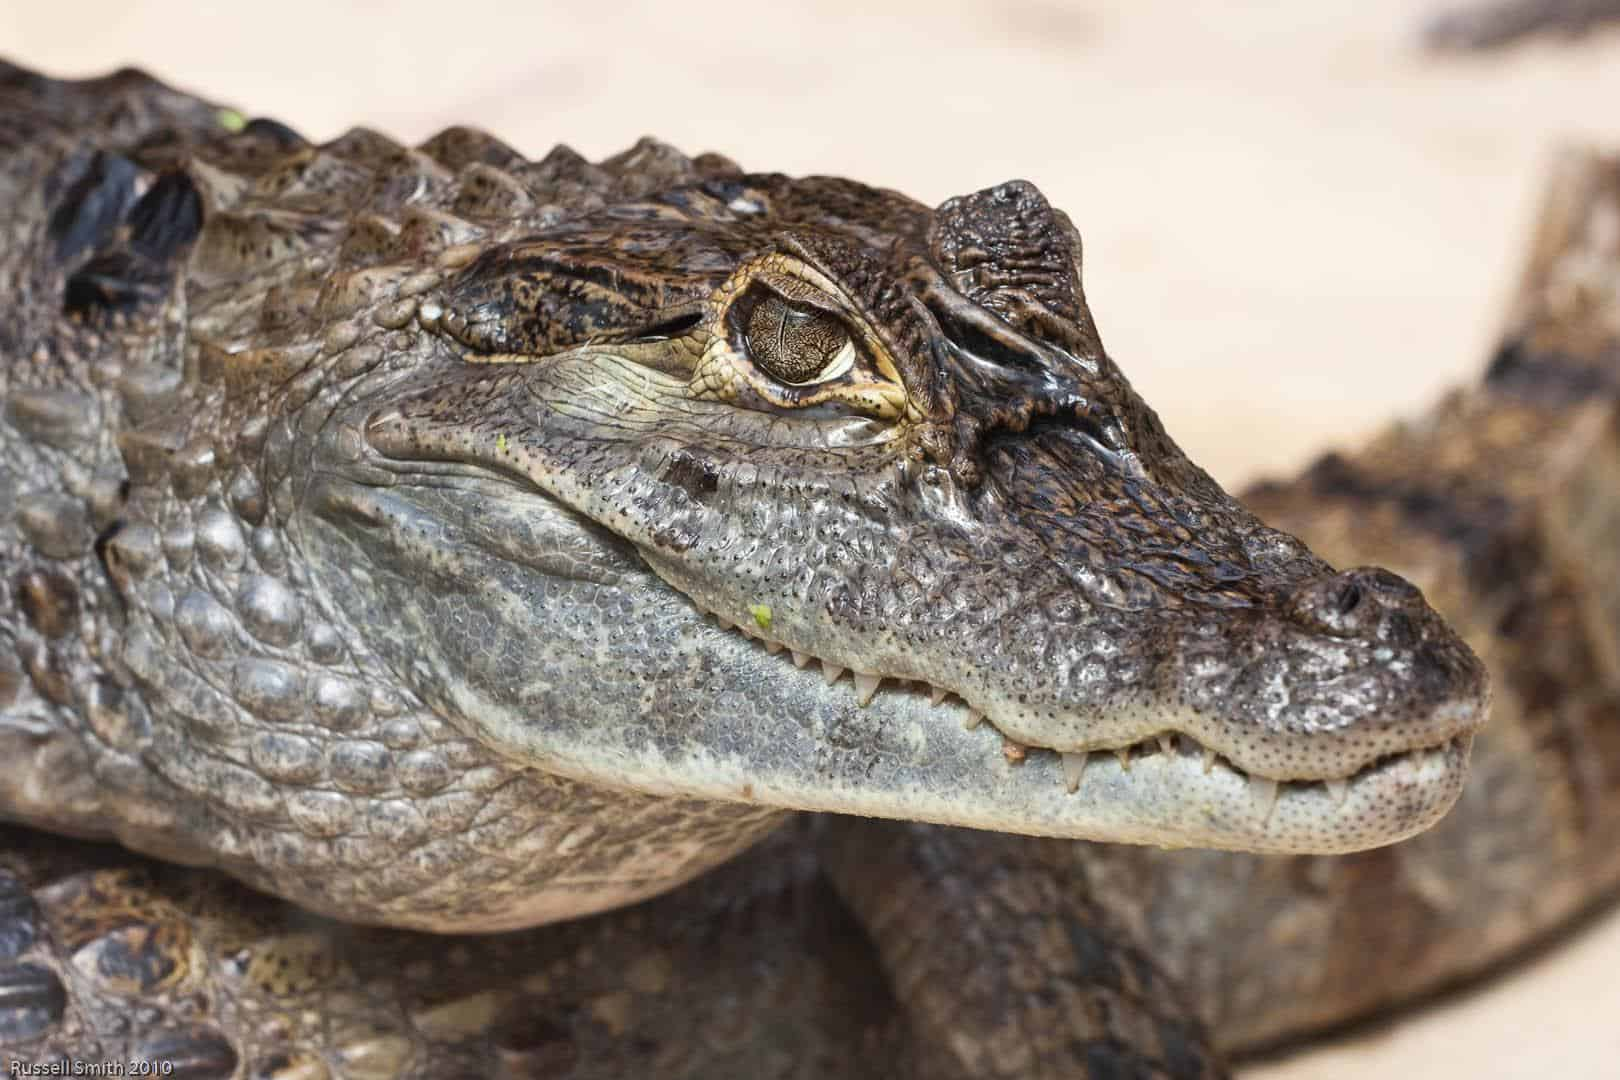 Russell And Smith >> Picture 3 of 9 - Caiman (Caiman Crocodilus, Melanosuchus Niger, Caiman Yacare, Paleosuchus ...